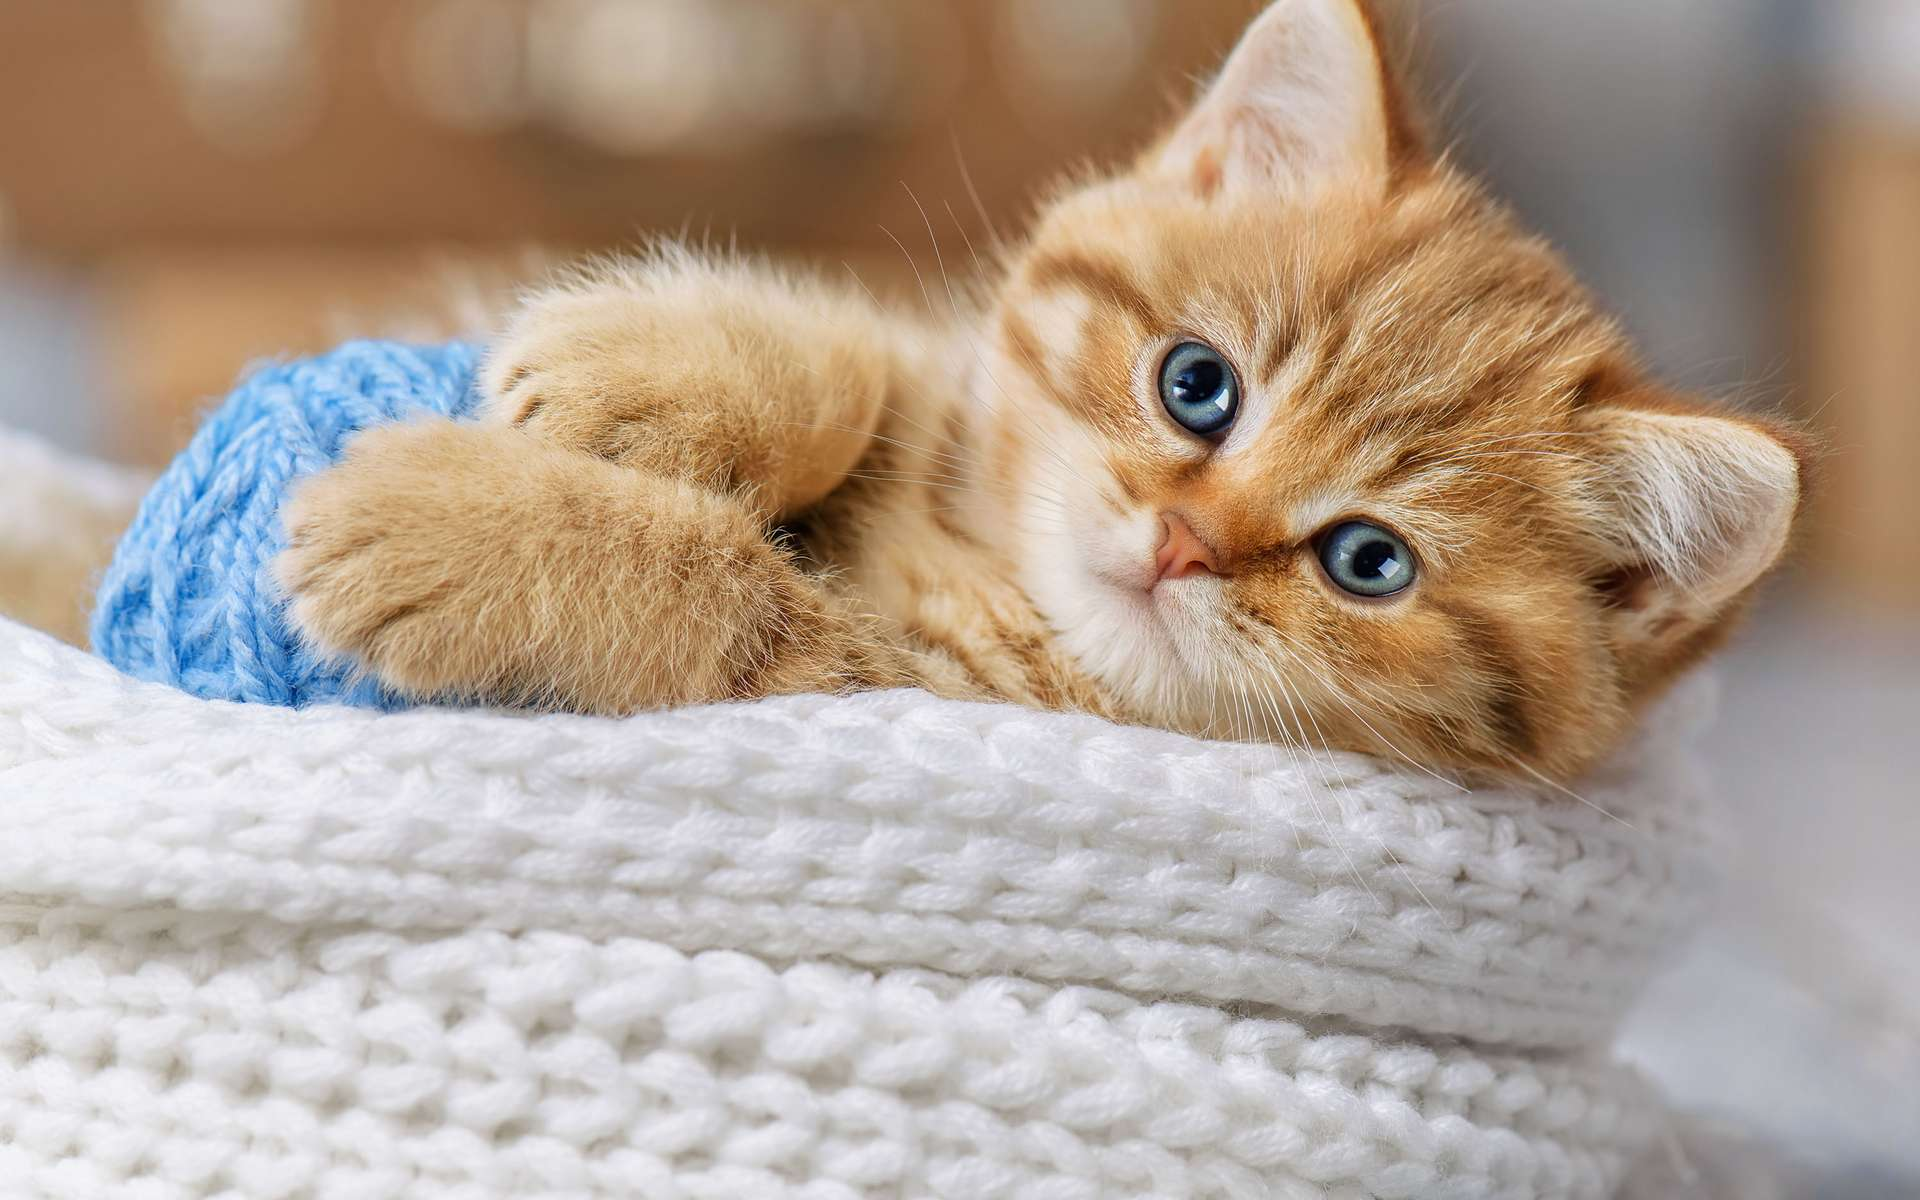 Envie d'adopter un chaton ? Profitez de la Journée mondiale du chat. © Alexandr Vasilyev, Adobe Stock